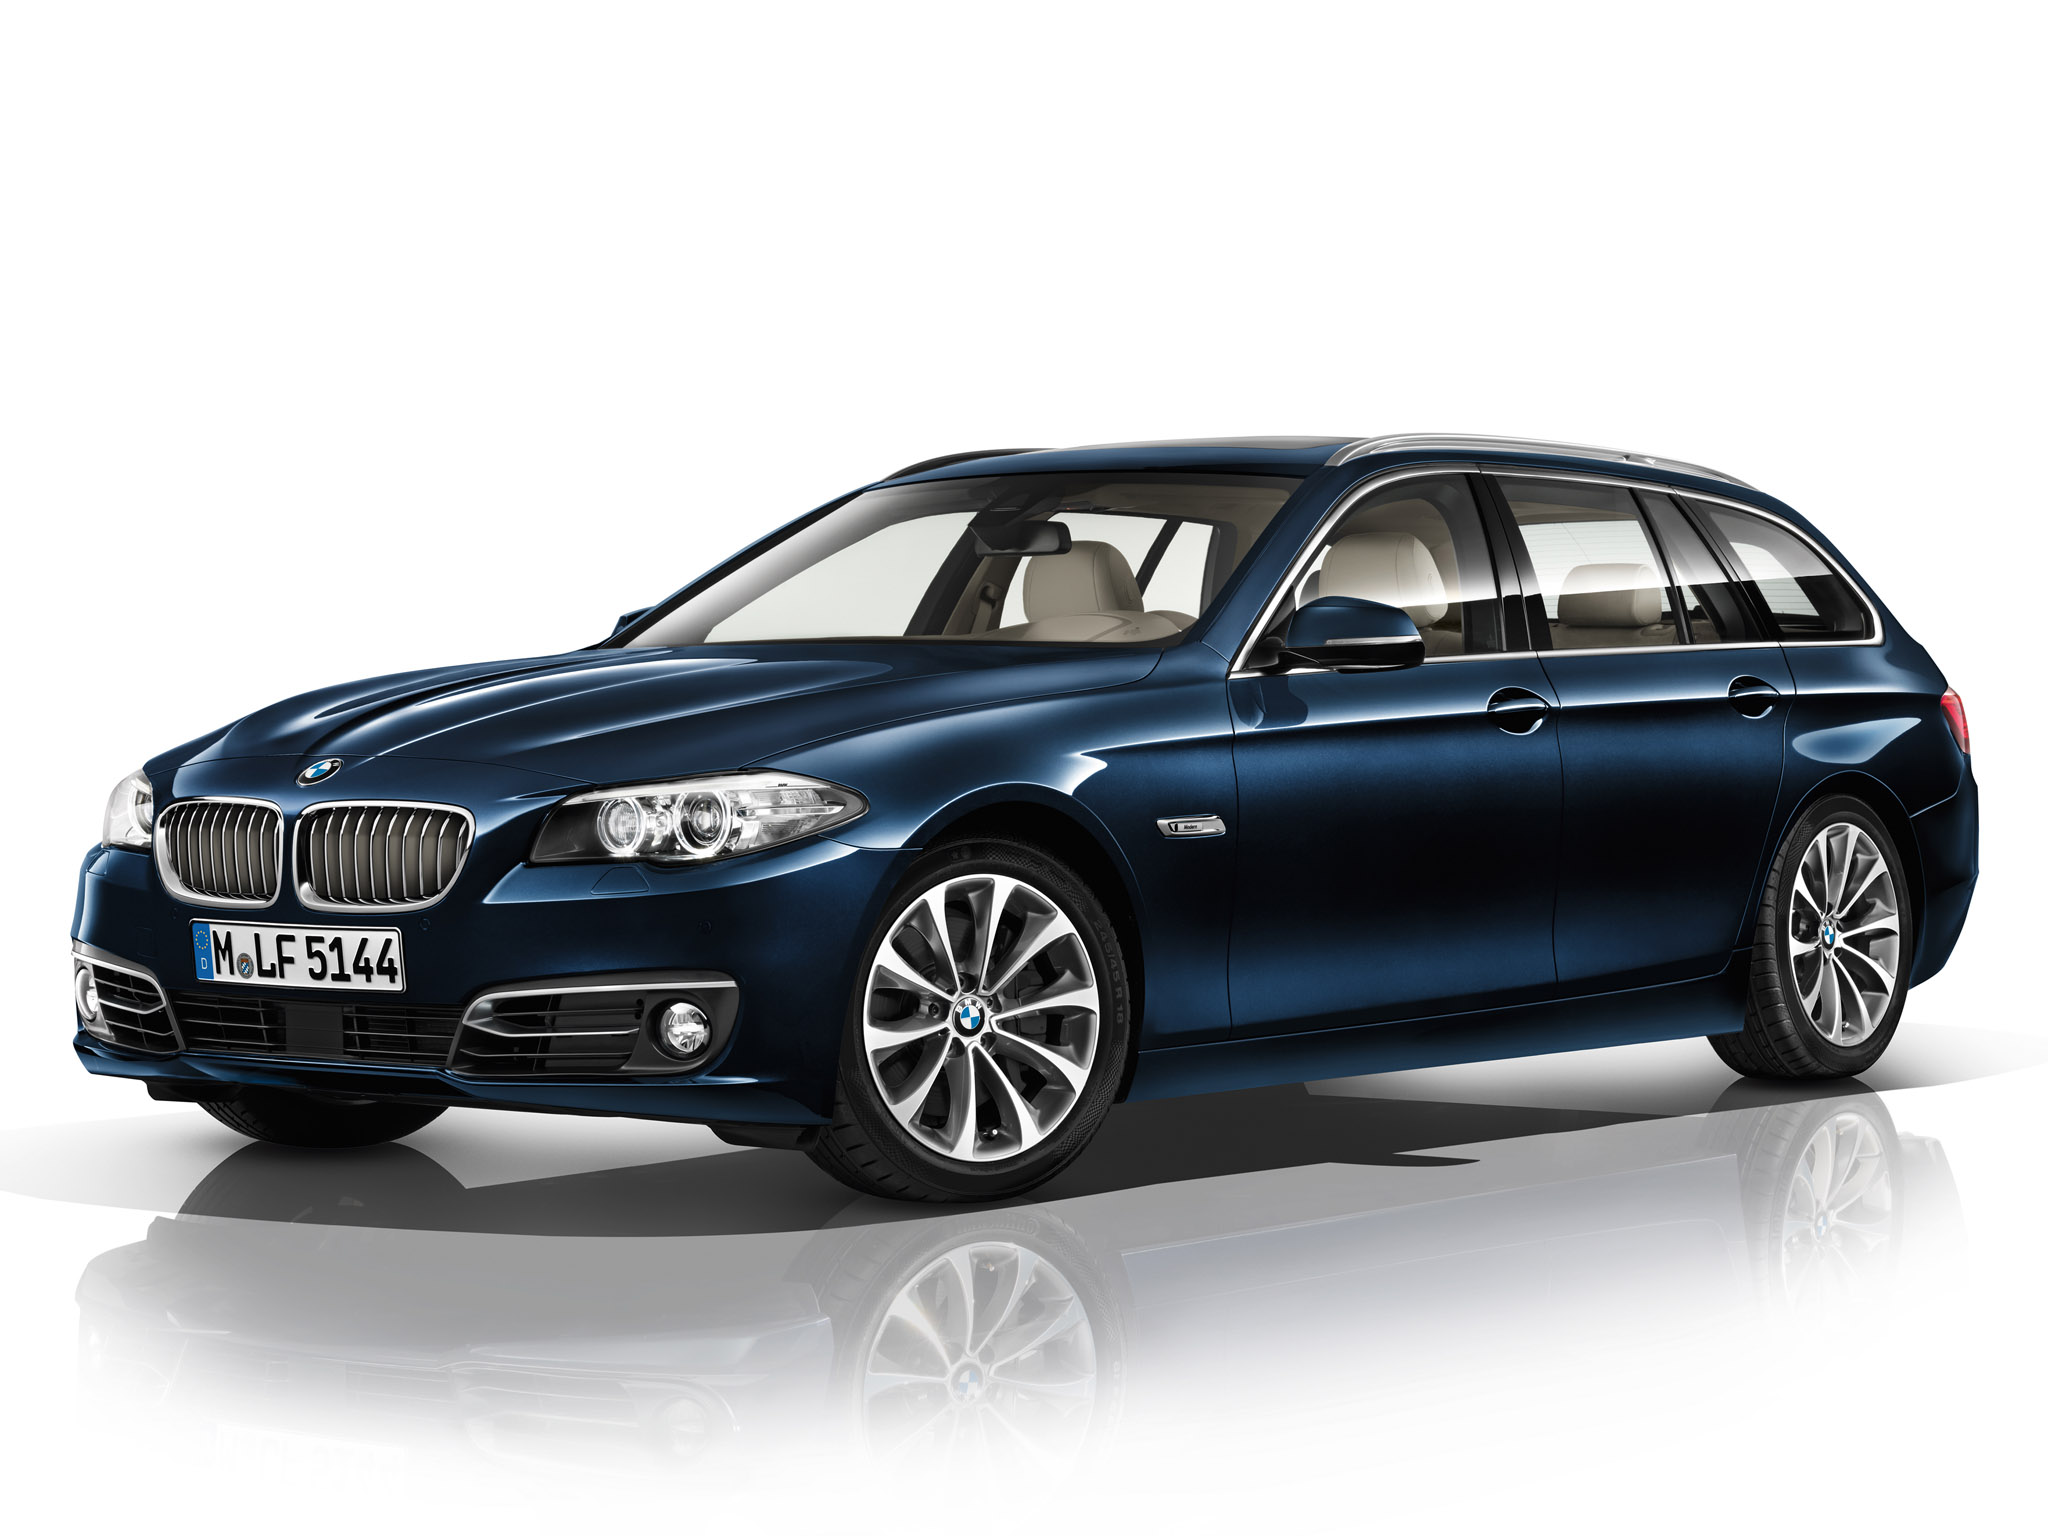 BMW 5 series 535d 2013 photo - 1